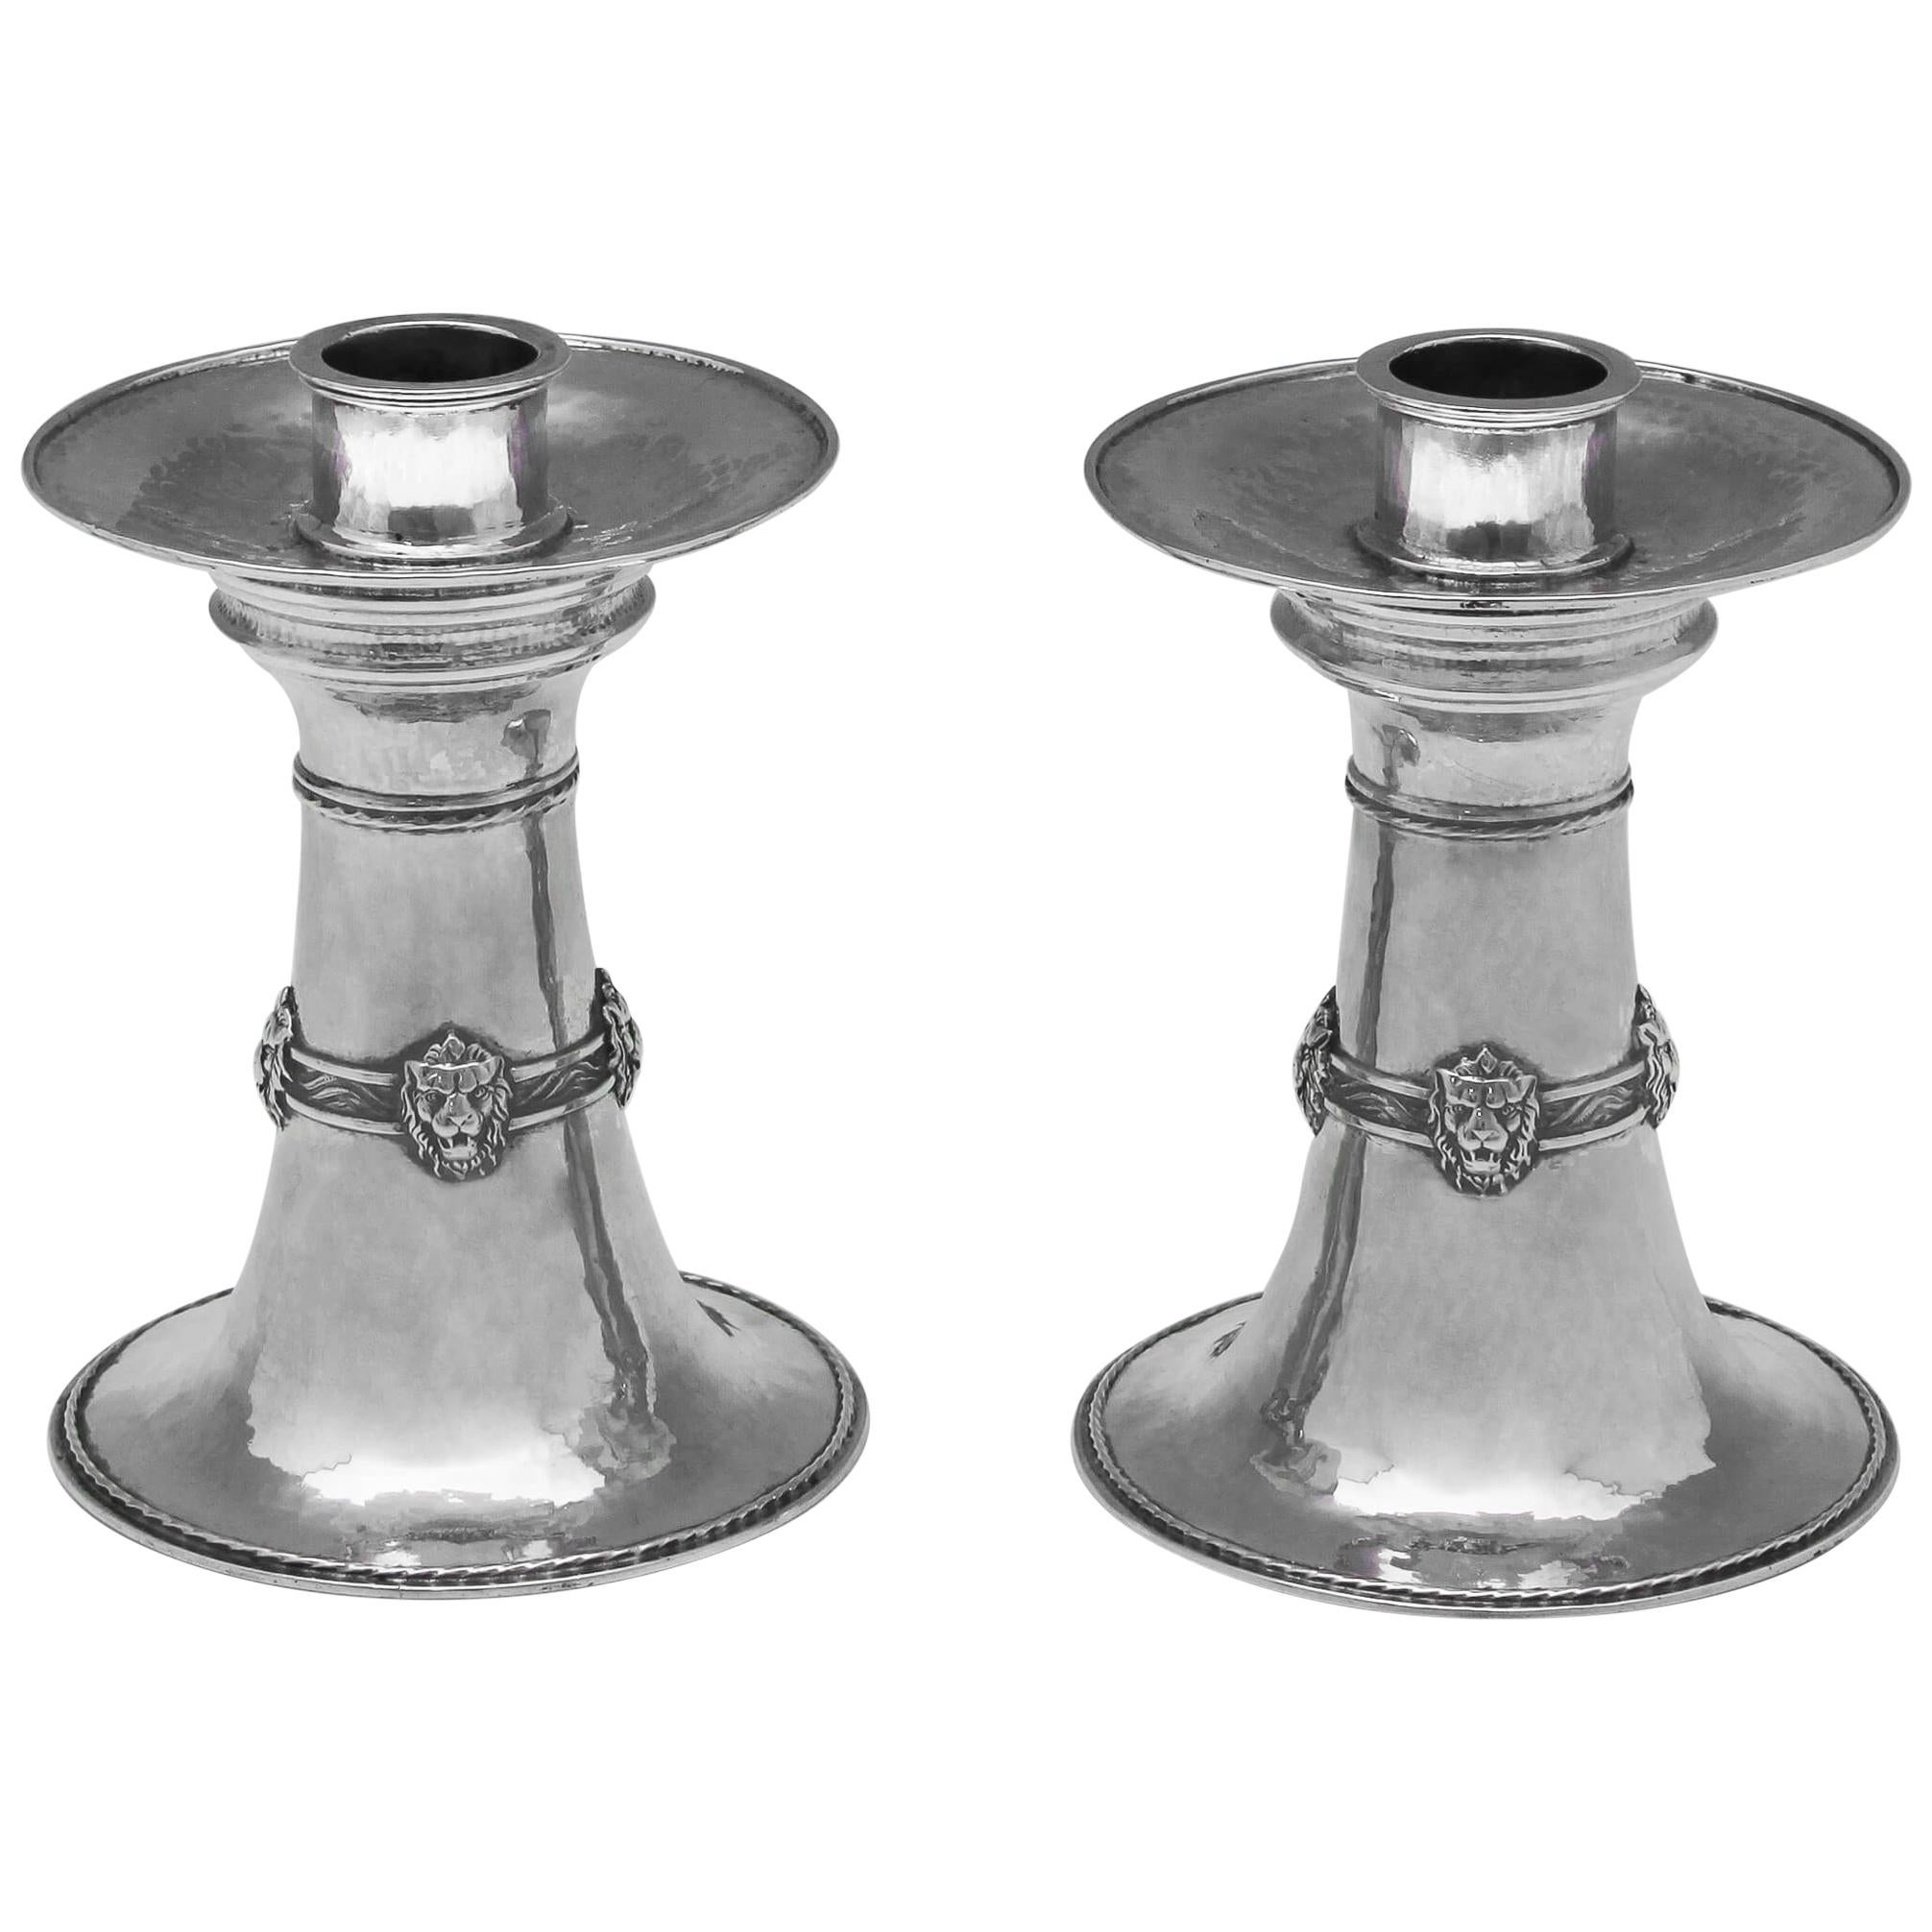 Arts & Crafts Sterling Silver Pair of Candlesticks by Omar Ramsden